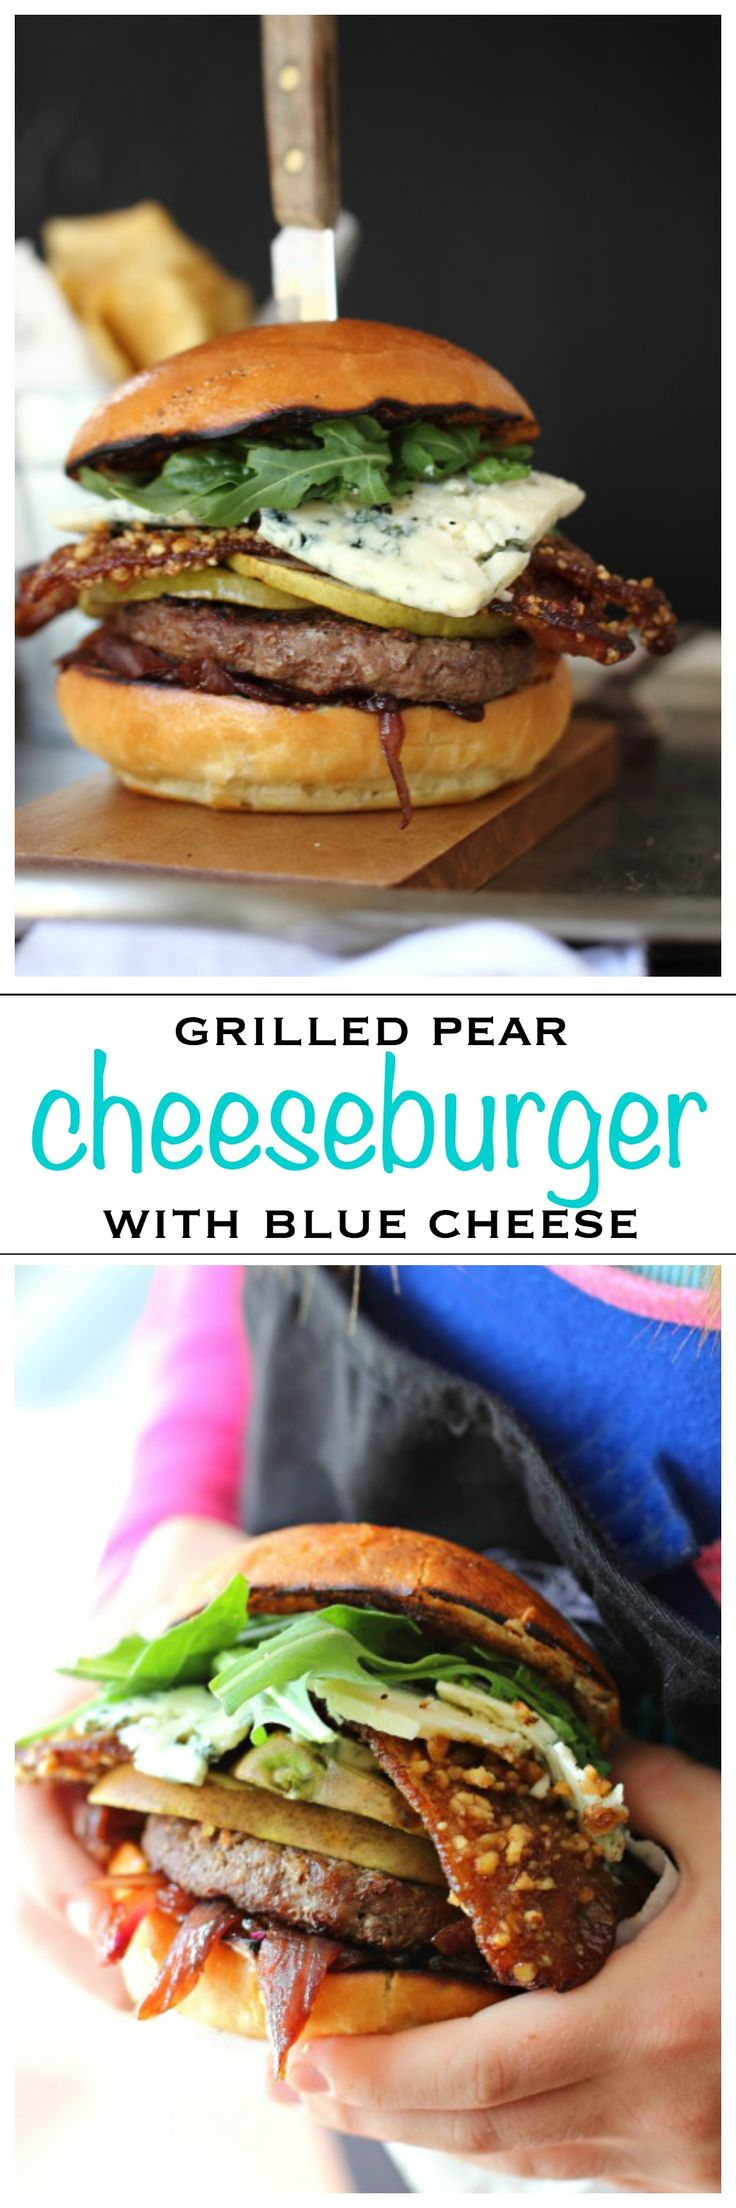 Grilled Pear with candied Bacon and Wisconsin Blue Cheese all on top of a juicy burger | Foodness Gracious